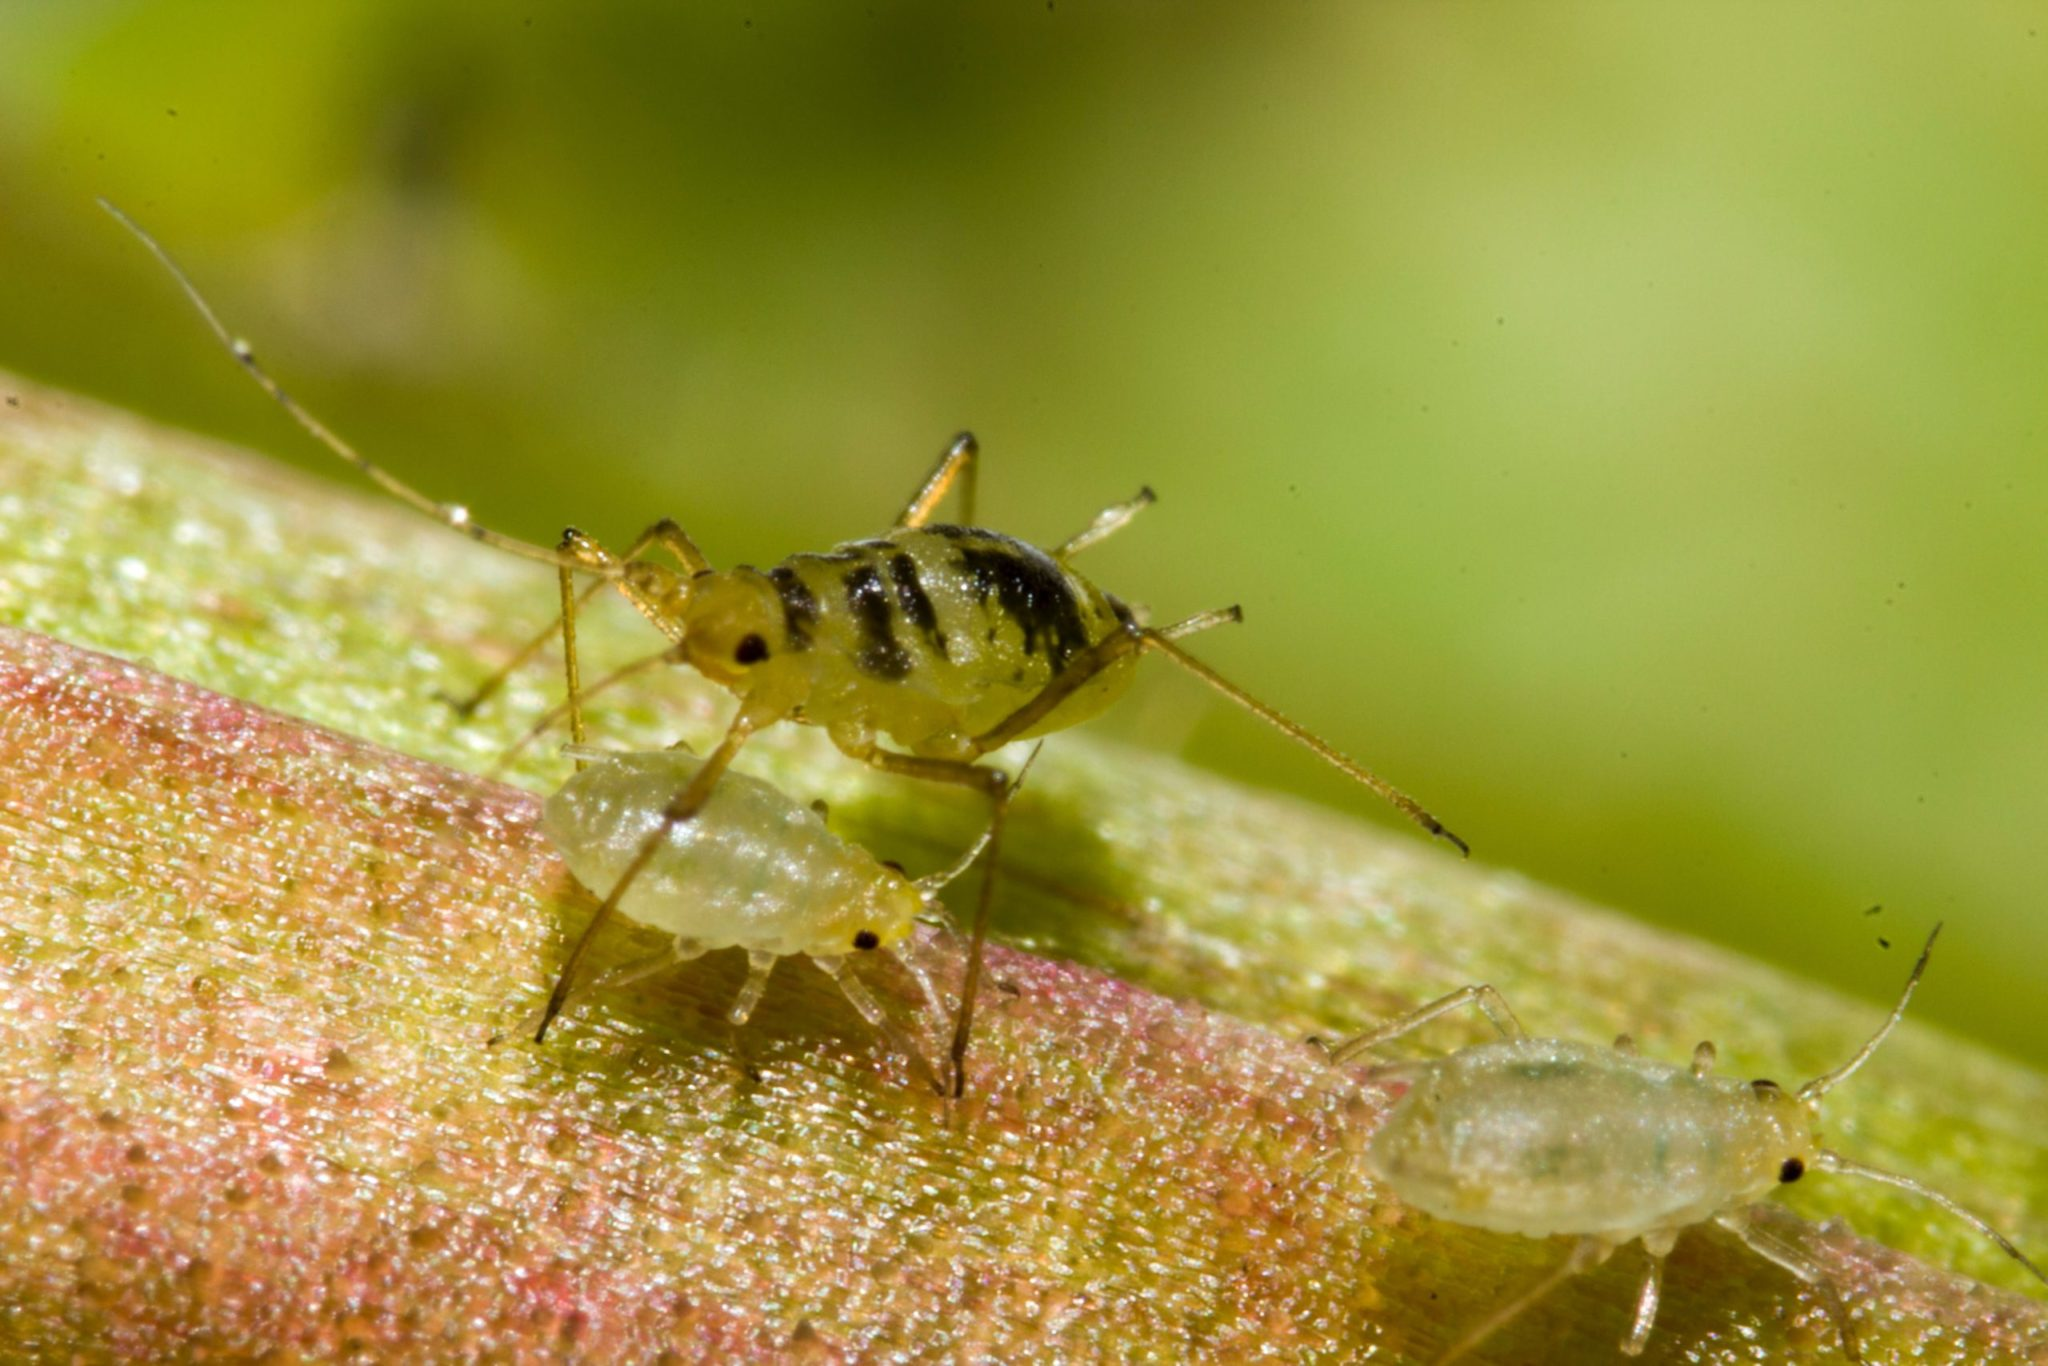 aphids, Fighting aphids: tips for home remedies and natural pest control, Best Garden, Home And DIY Tips